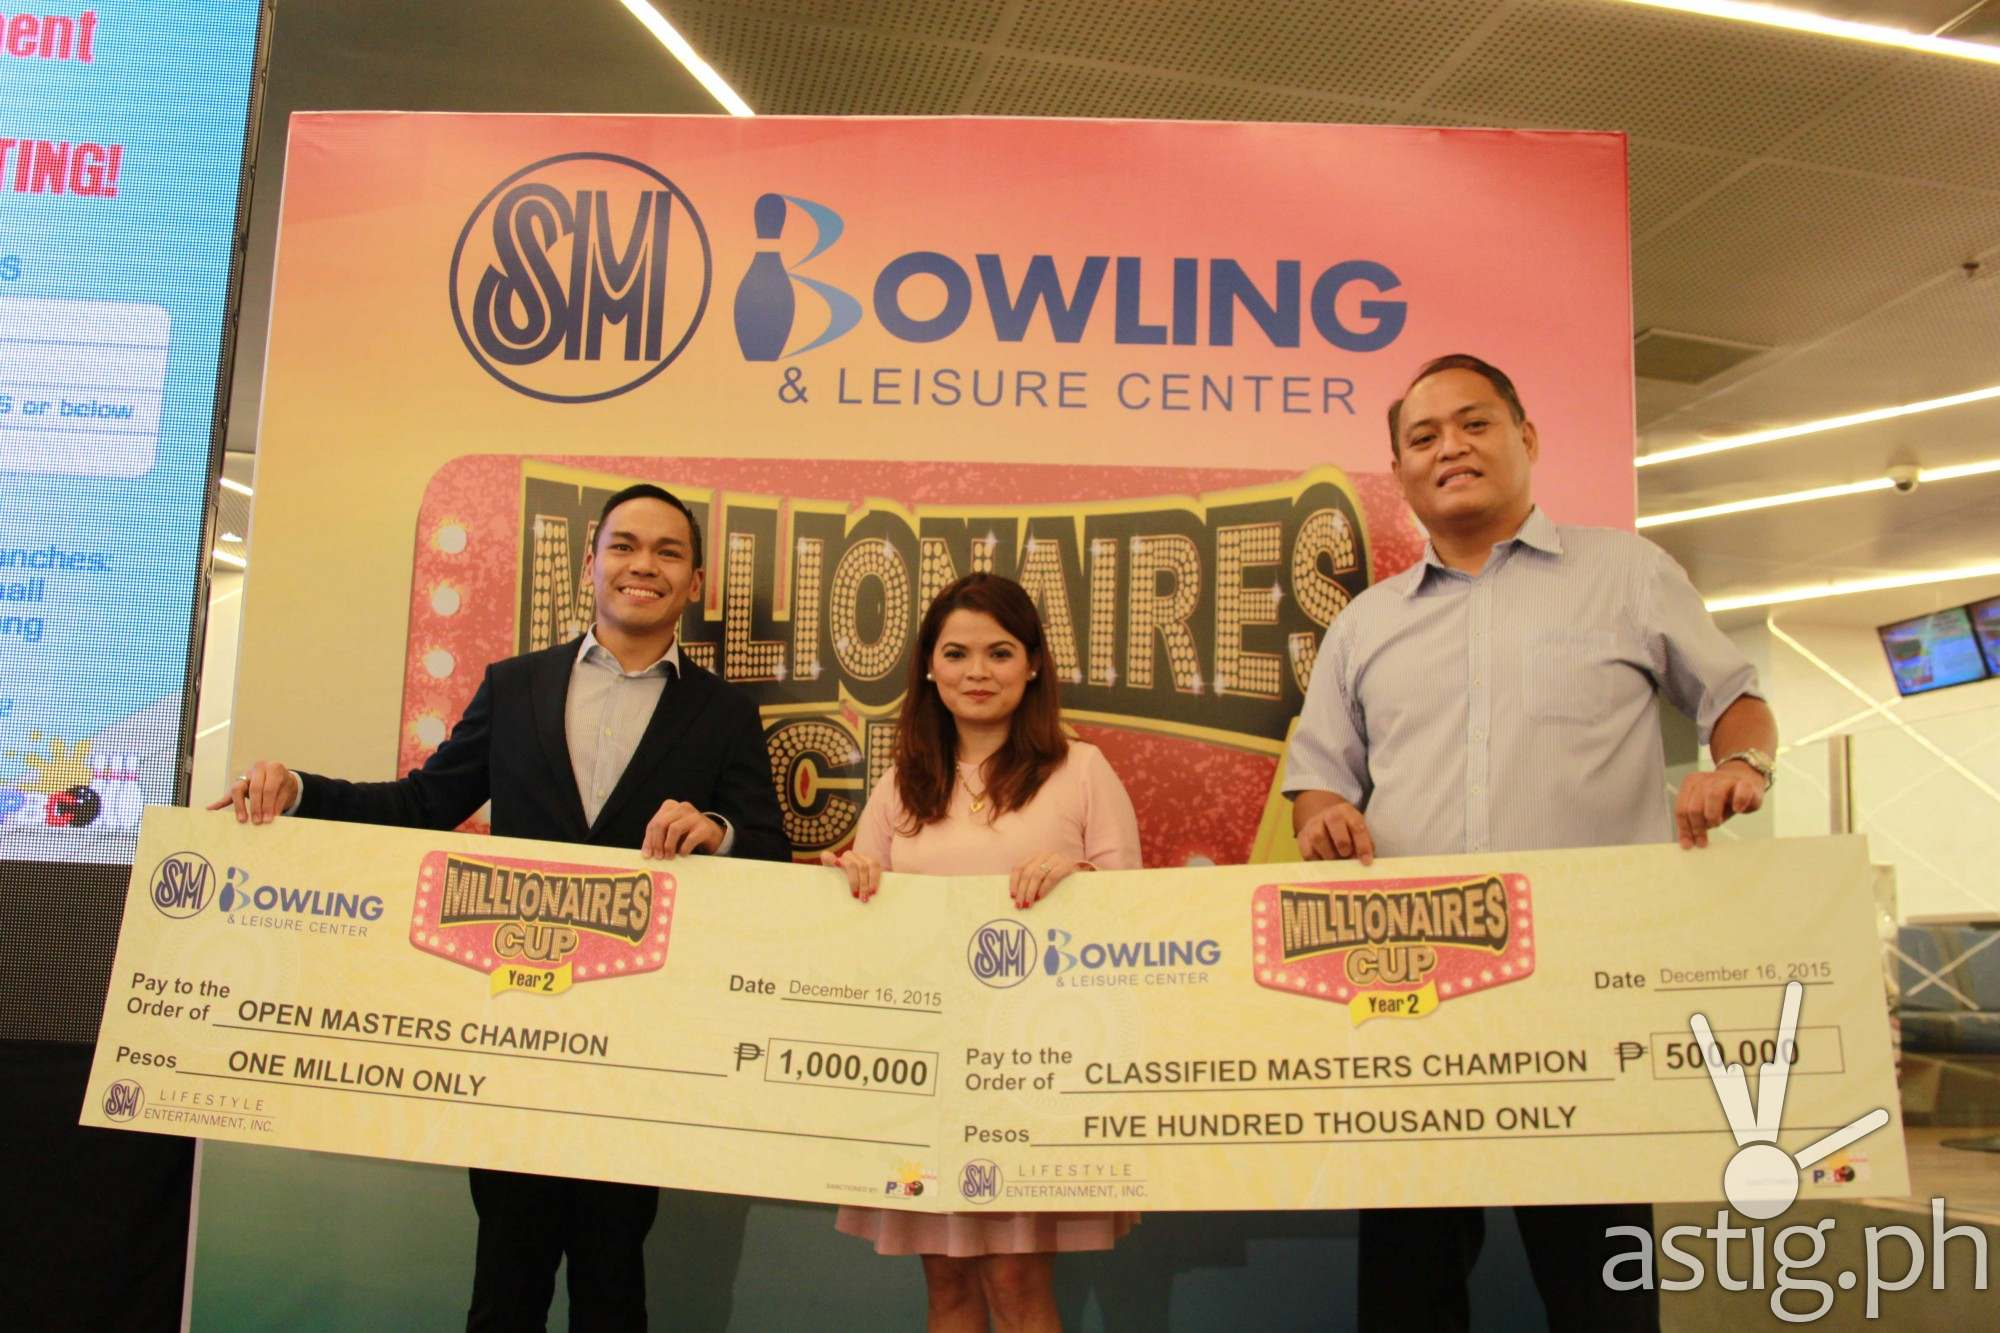 SM Bowling Millionaires Cup 2015